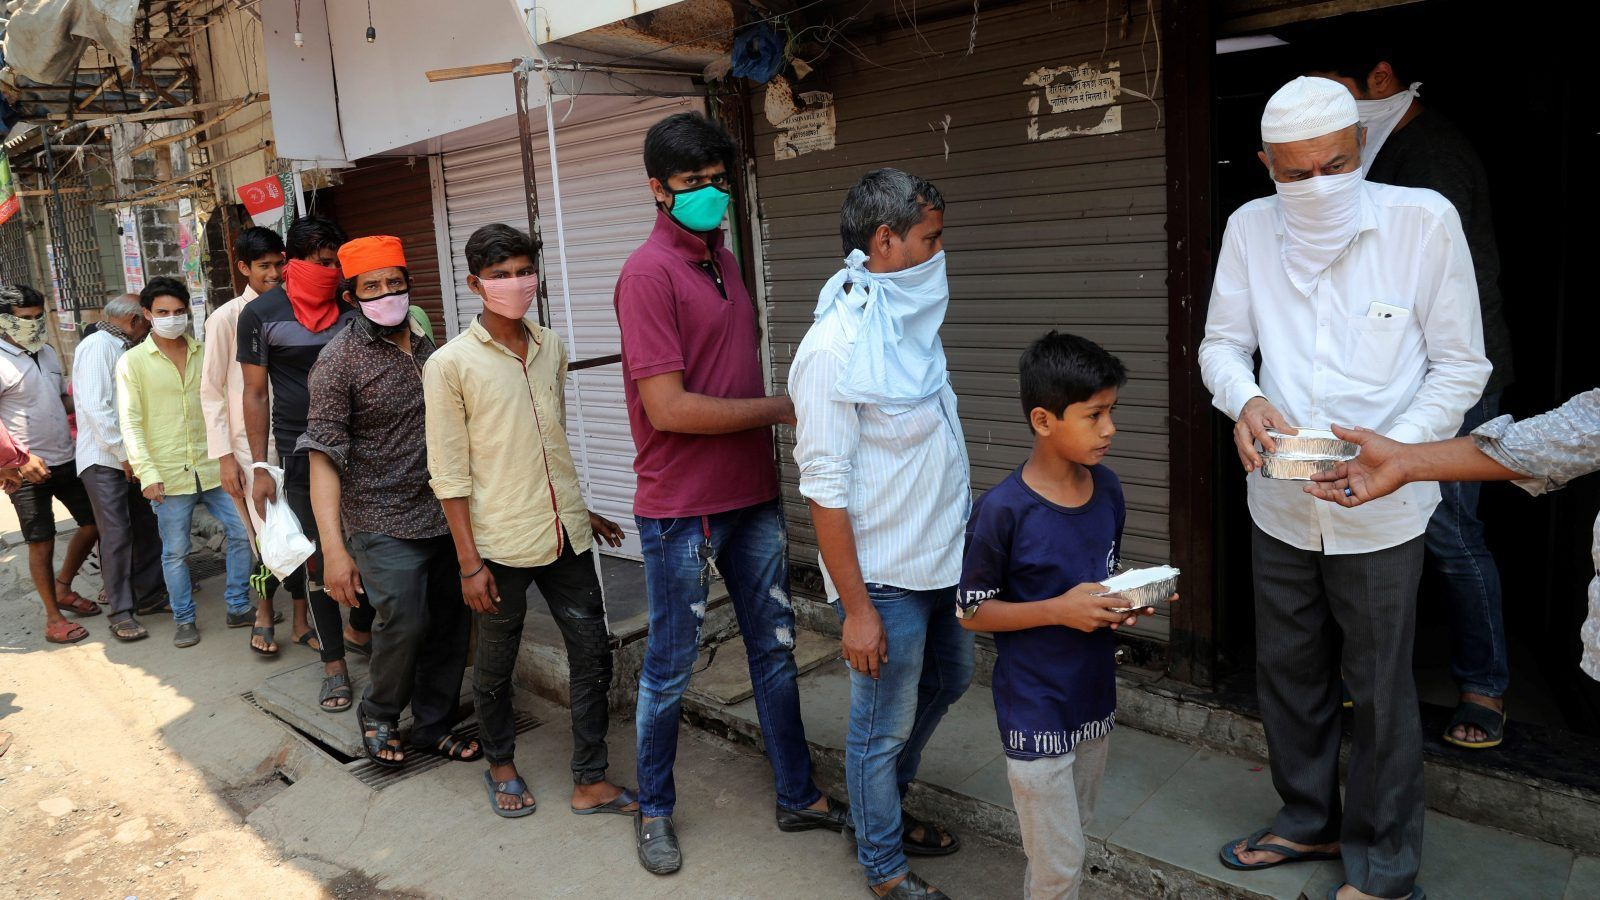 Indiamay be forgetting over 100 million people in its coronavirus relief measures